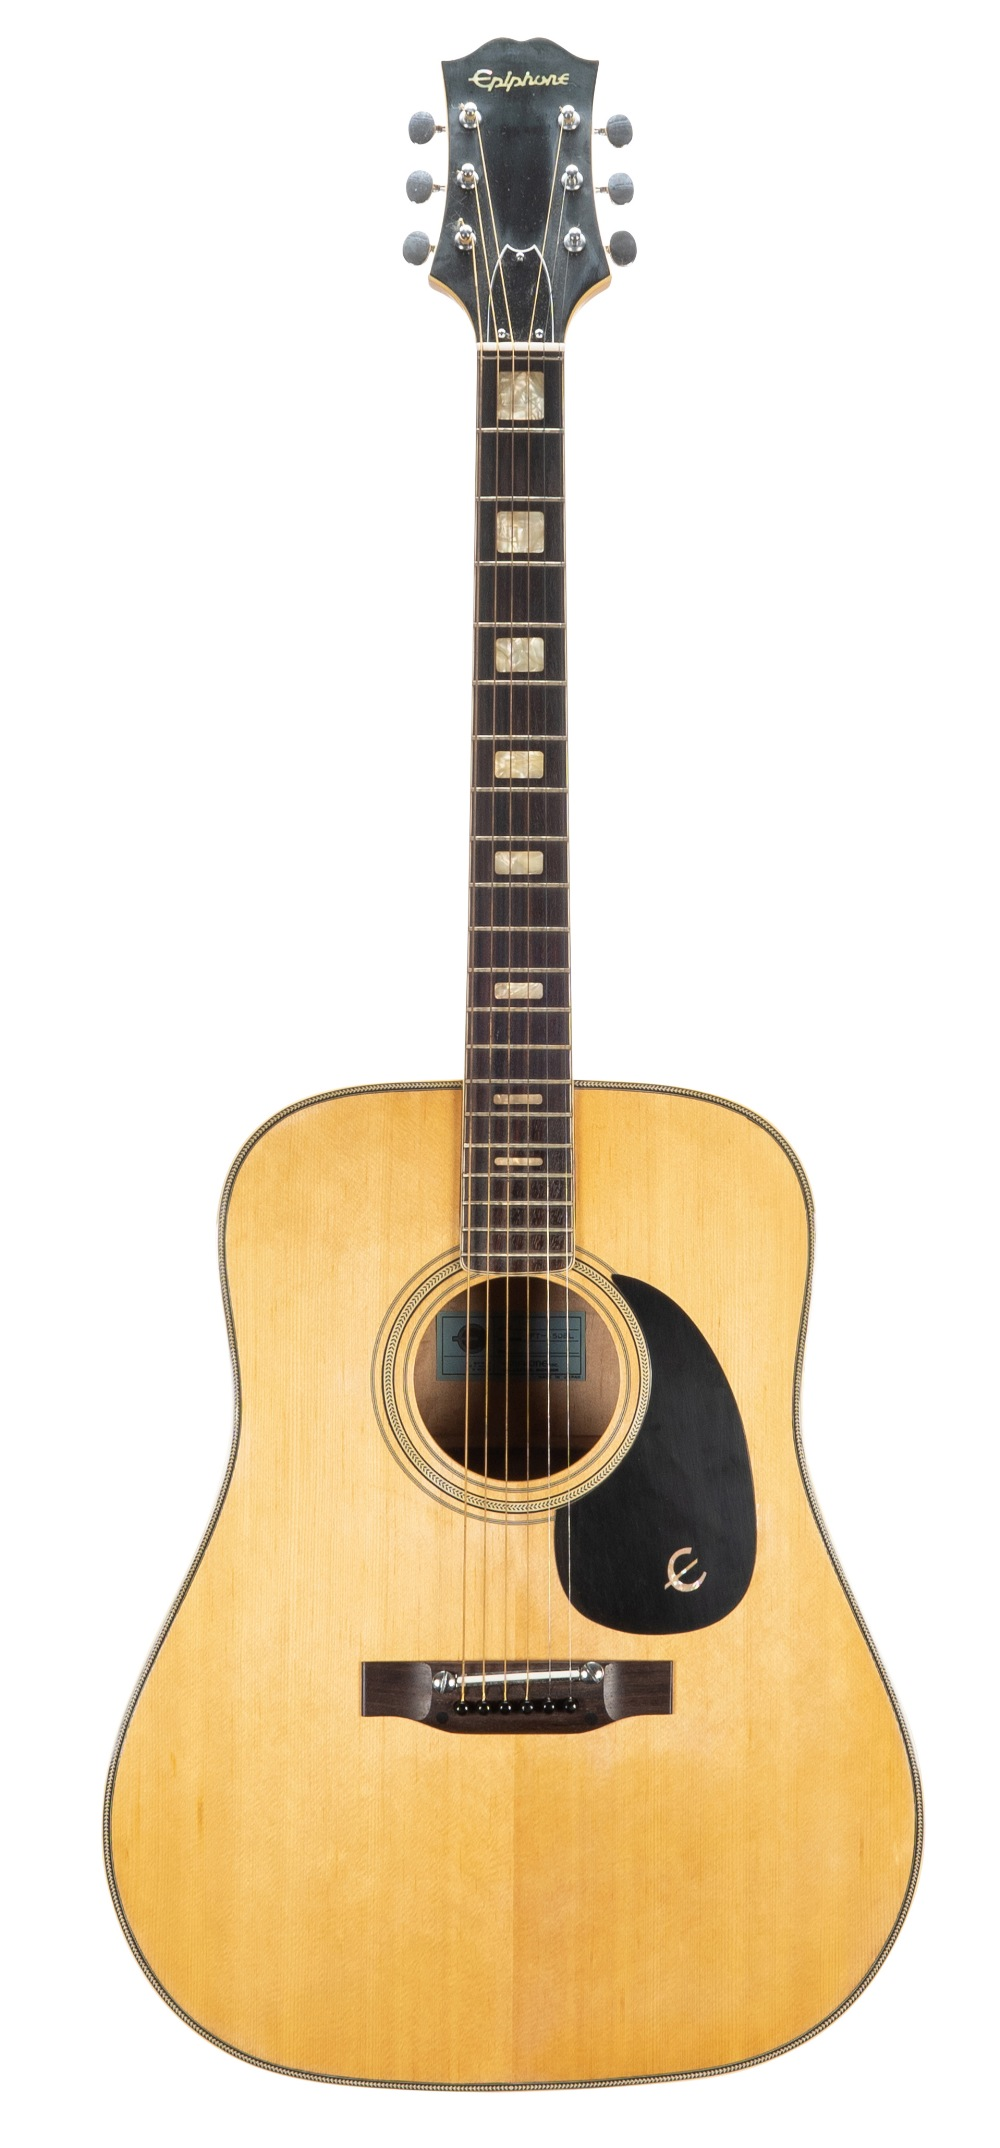 1977 Epiphone FT-150 BL acoustic guitar, made in Japan; Finish: natural; Fretboard: rosewood; Frets: